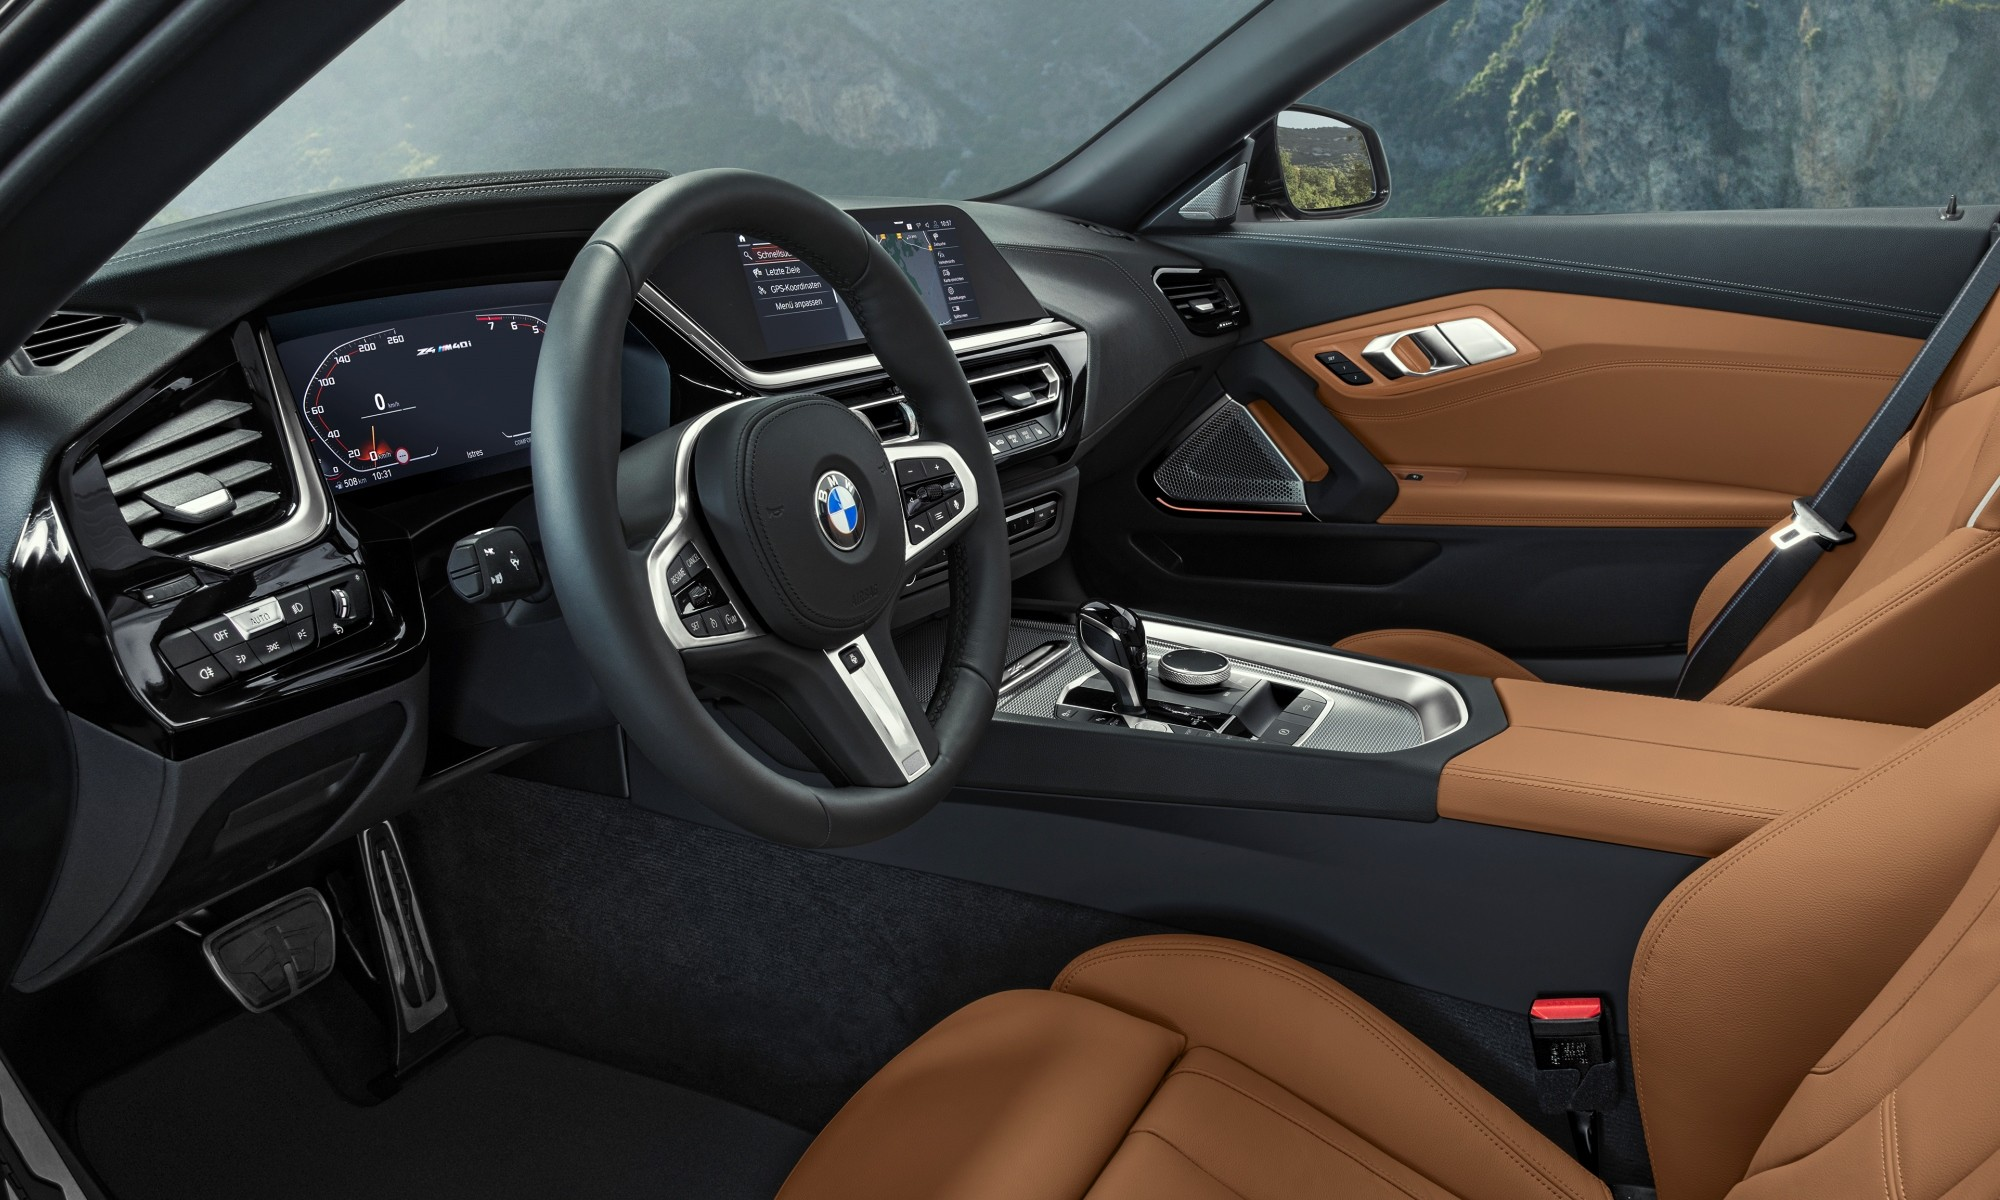 New BMW Z4 interior